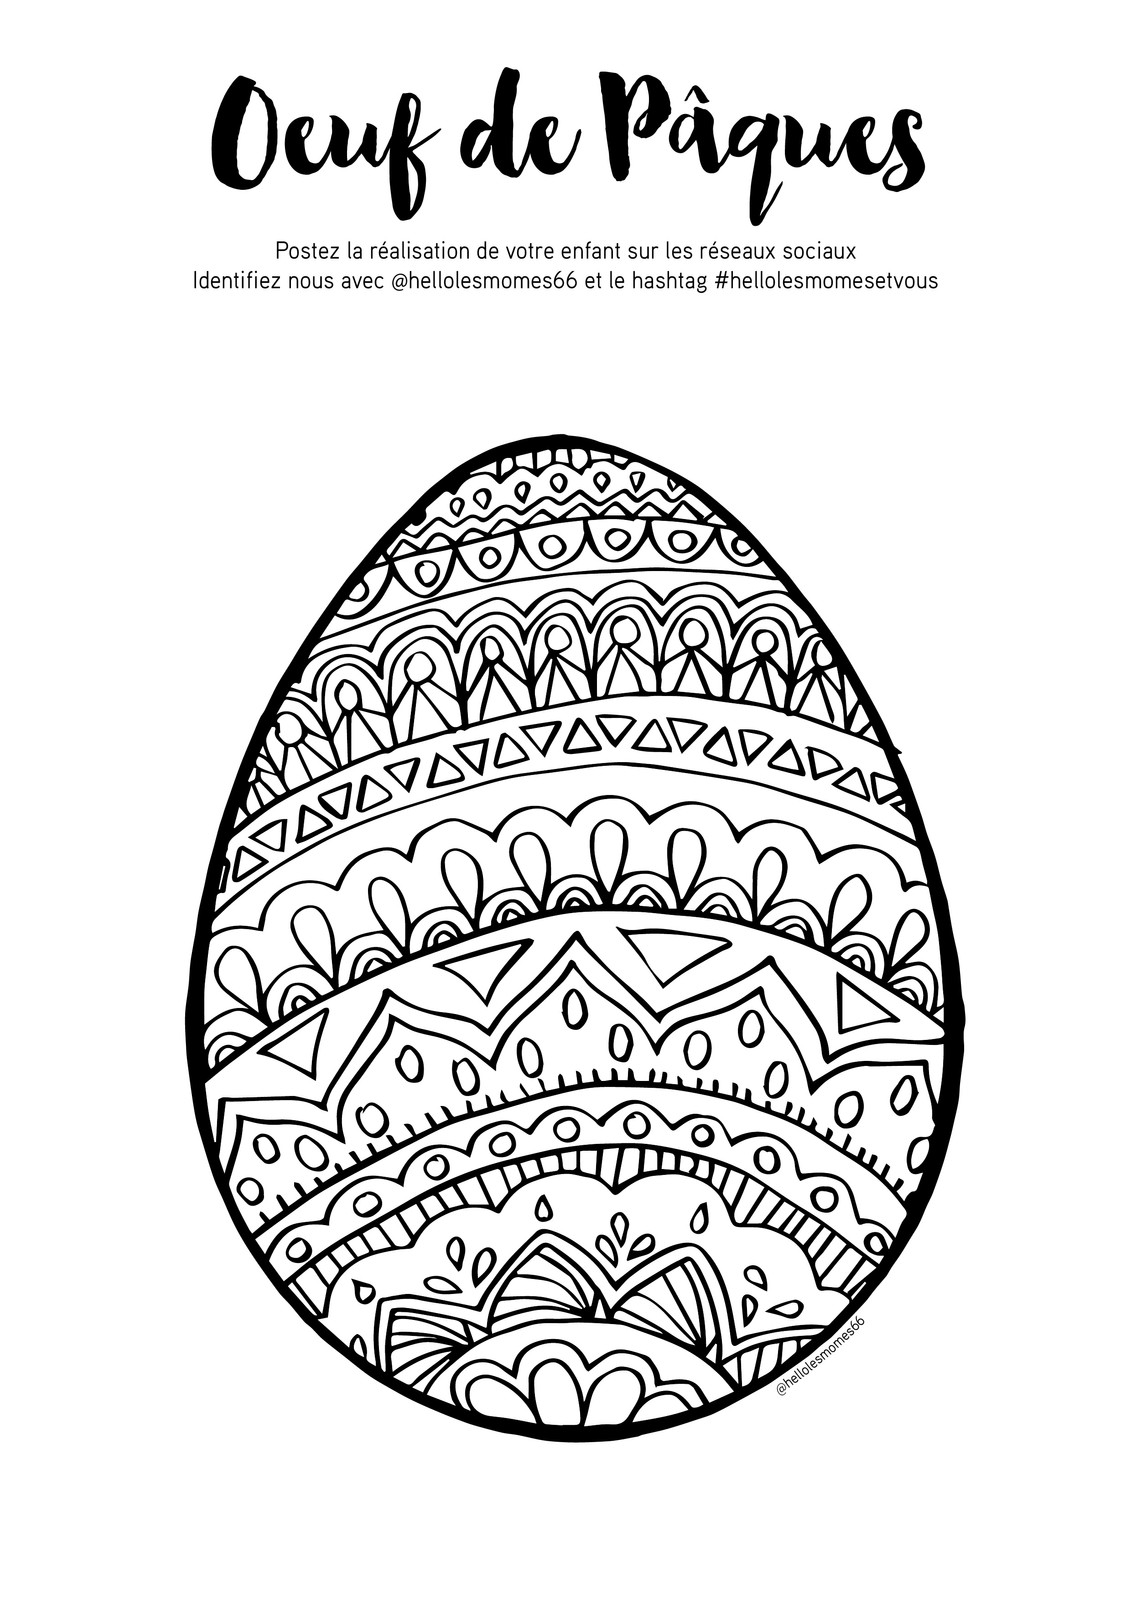 Coloriage Paques Famille.Coloriage Paques 01 Jpg